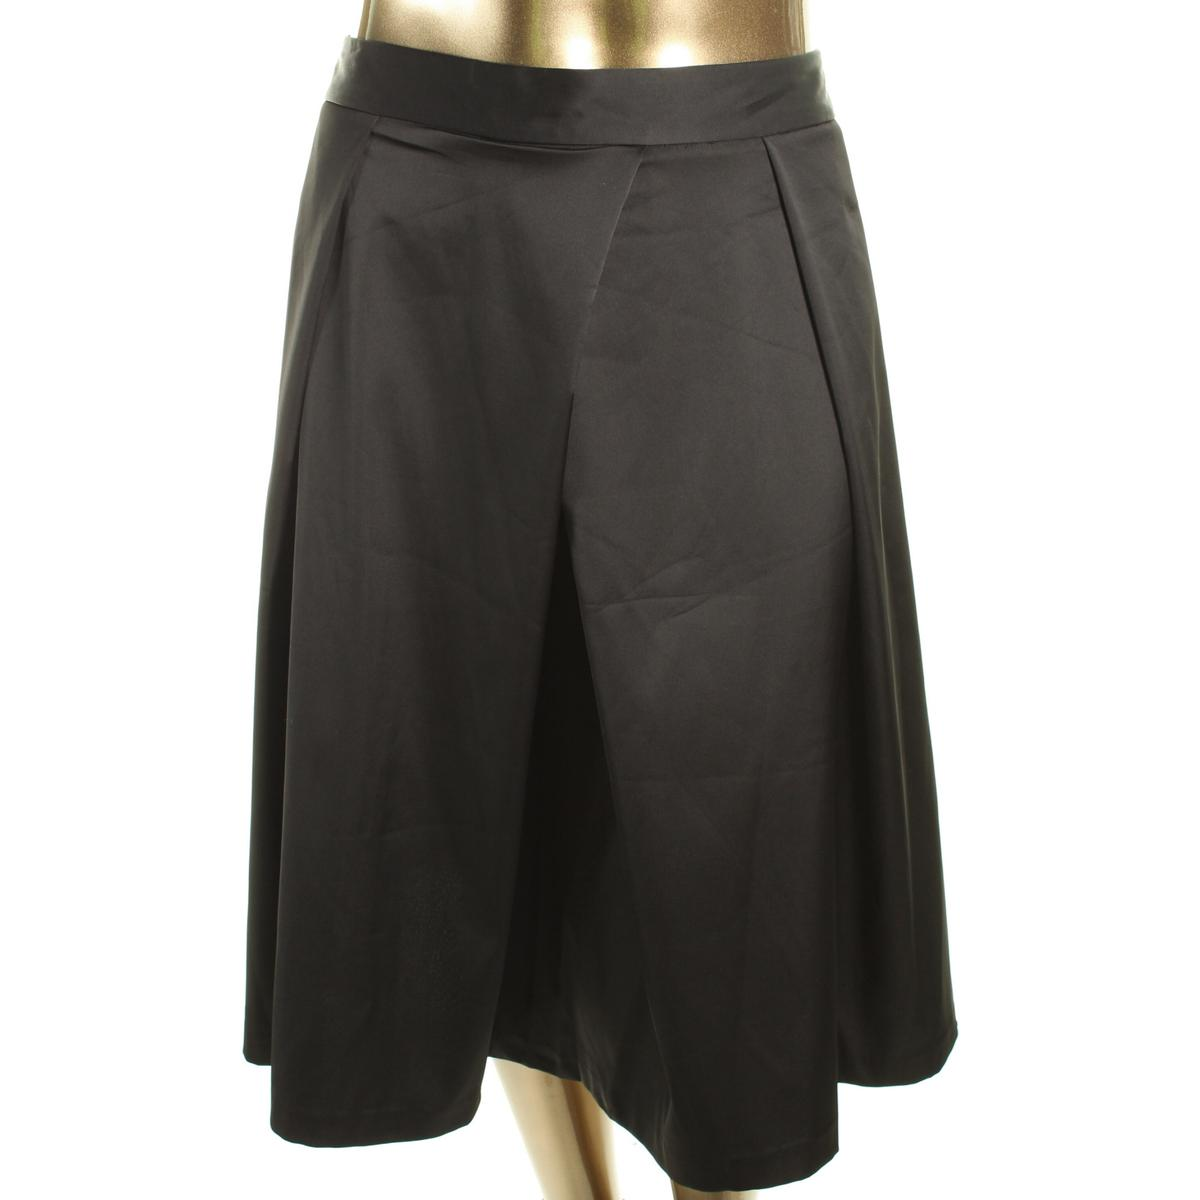 city chic 7938 womens black satin pleated flare skirt